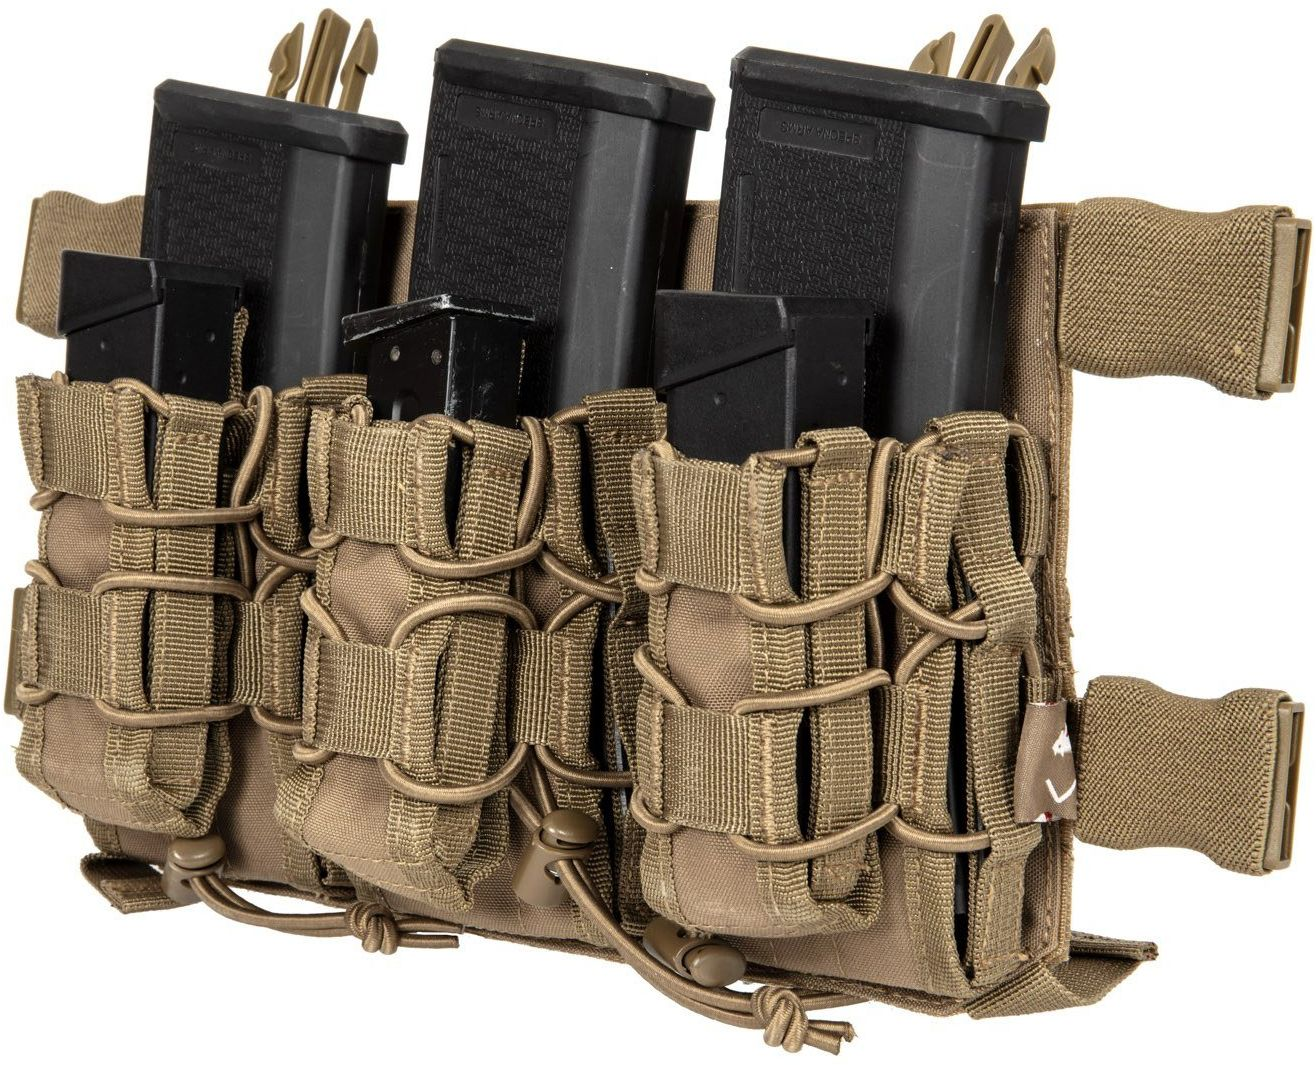 Panel Viper Tactical VX Buckle Up Mag Rig - coyote (VIP-19-030487) G